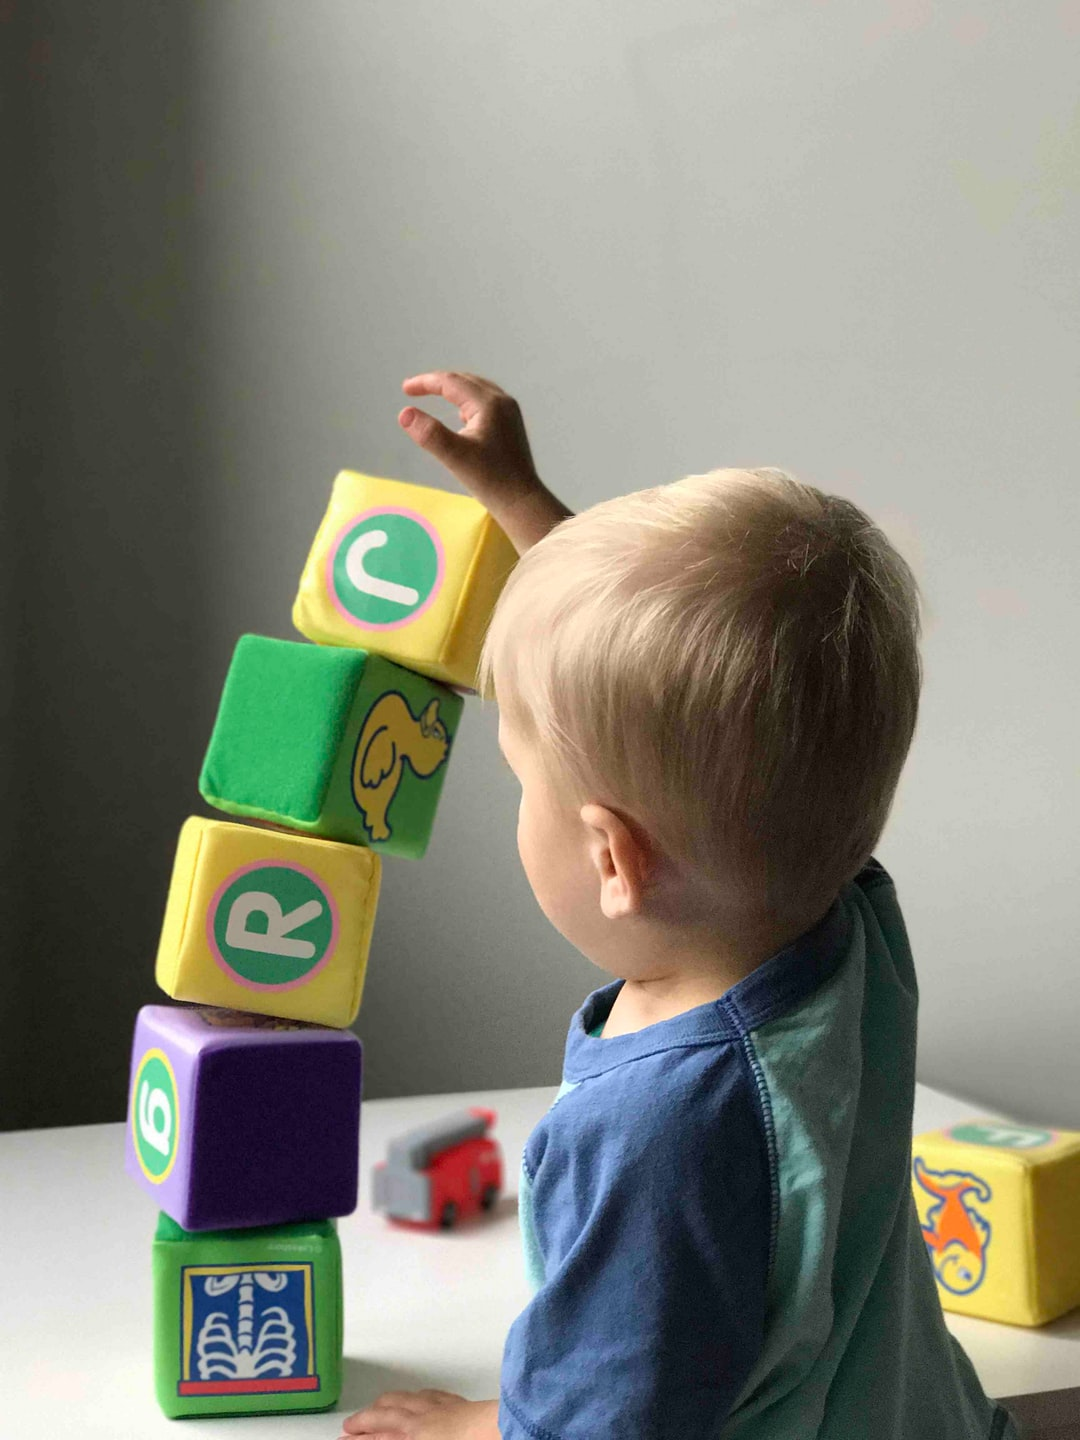 Baby building stack of blocks